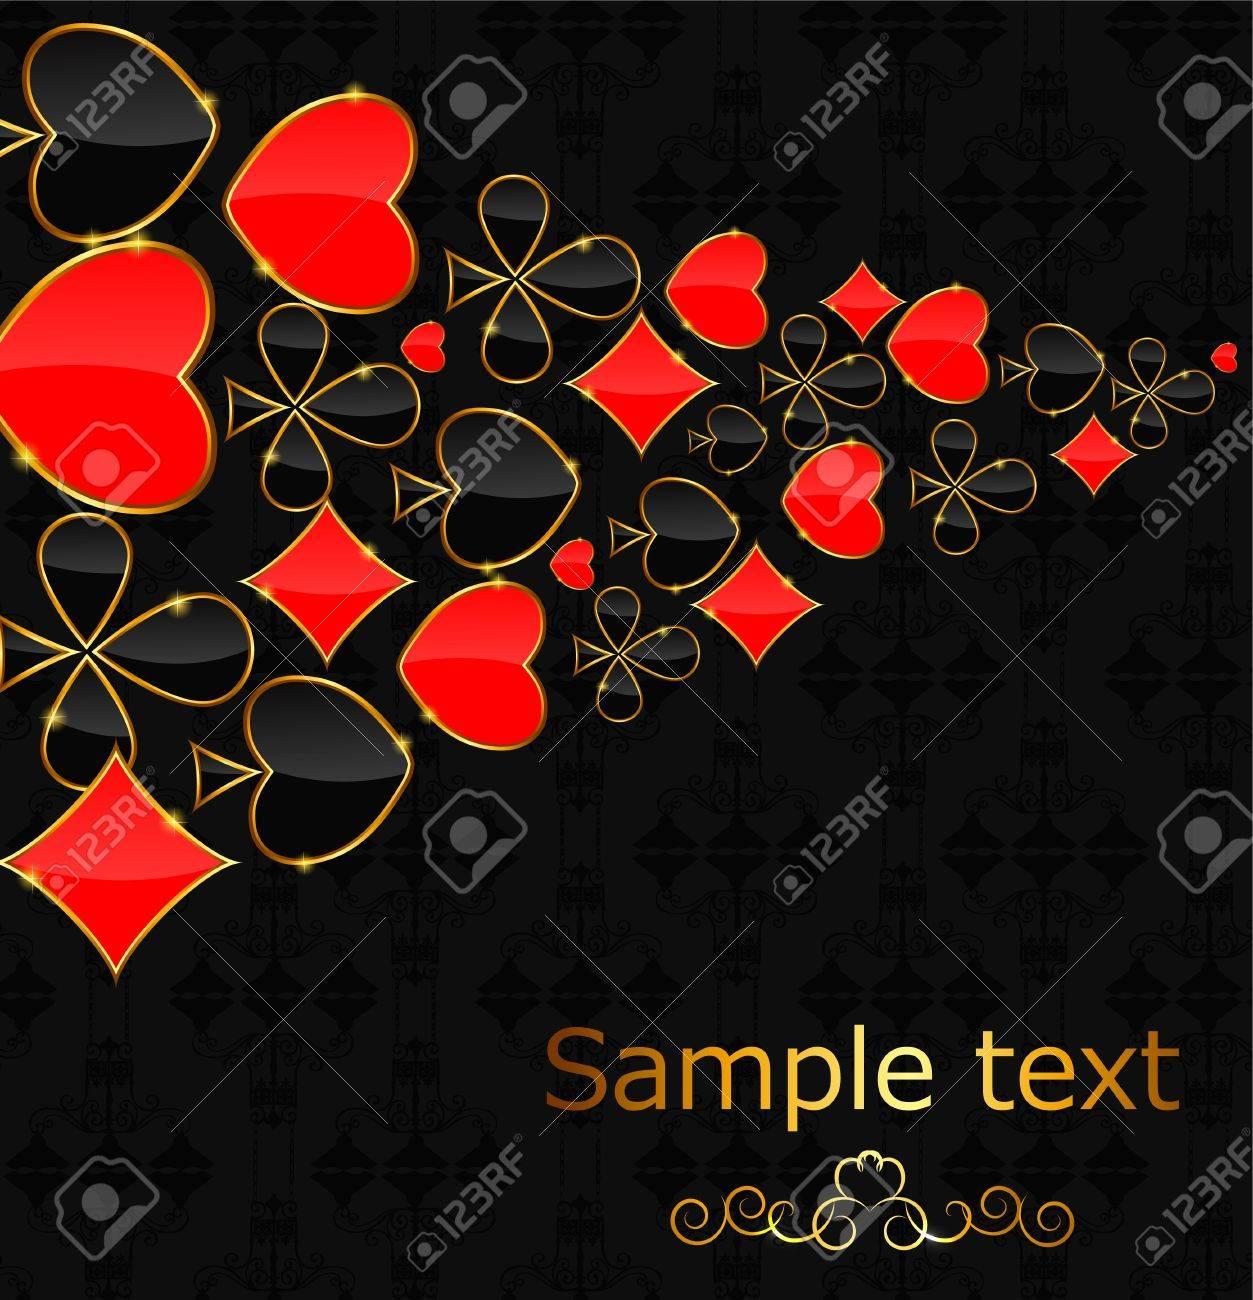 Abstract background with card suits for design  Vector illustrat Stock Vector - 19635463